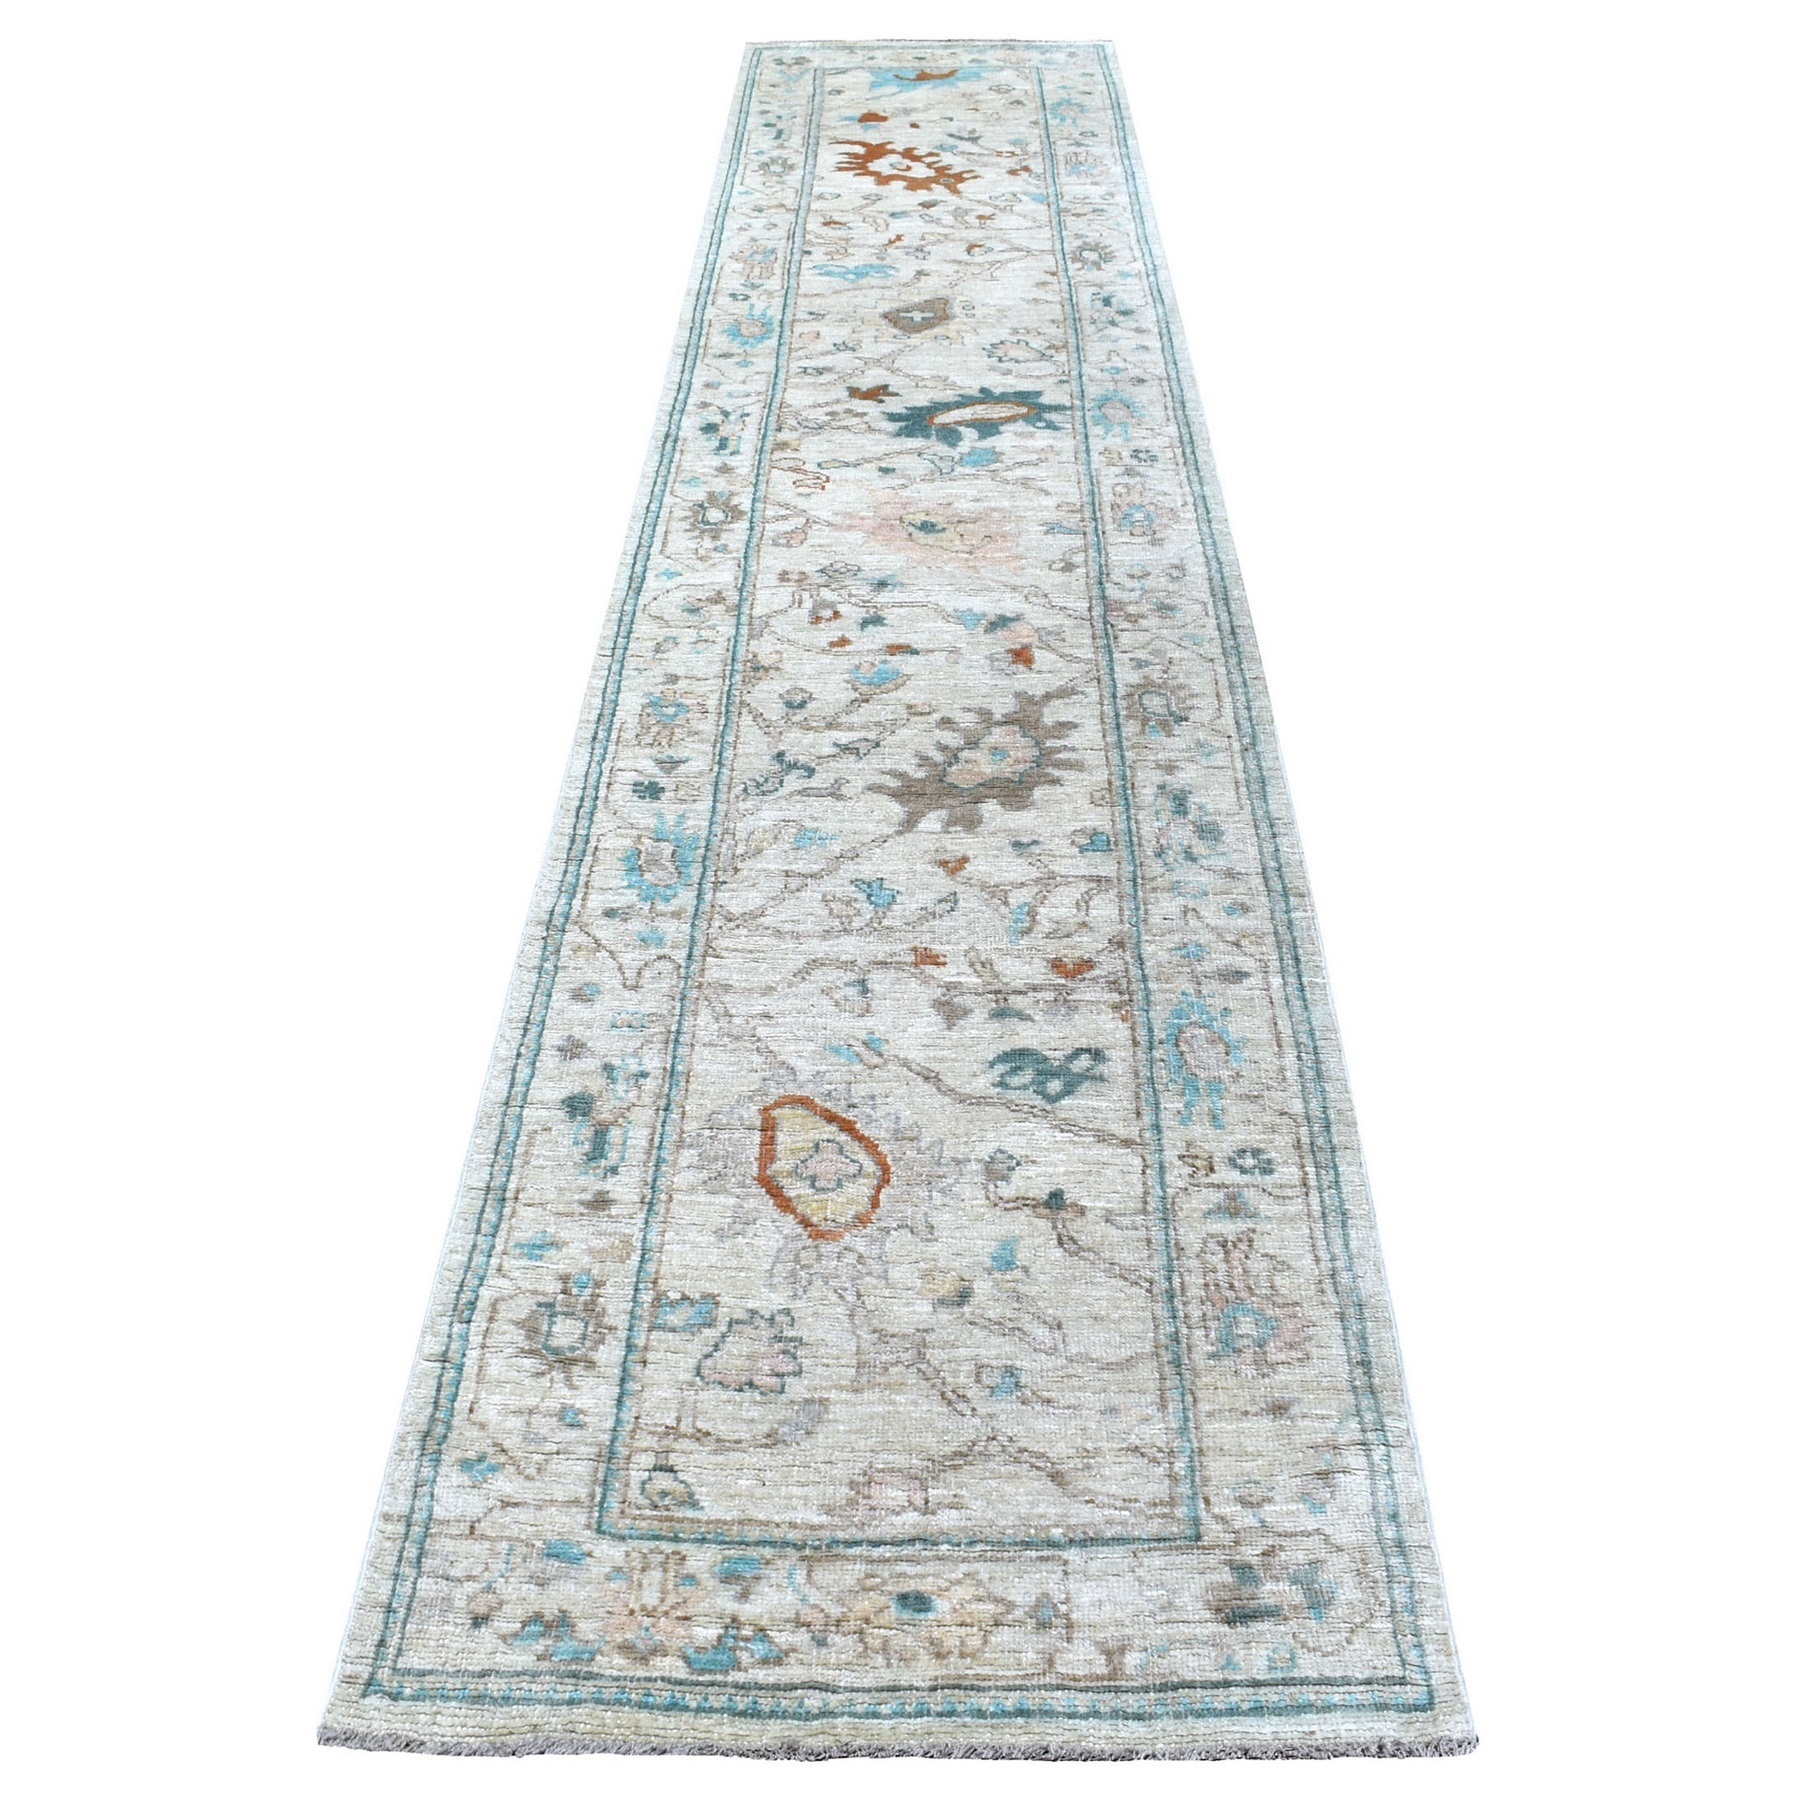 "2'9""x13'4"" Angora Oushak Hand Woven Pliable Wool Light Gray With Floral Motifs Oriental Runner Rug"